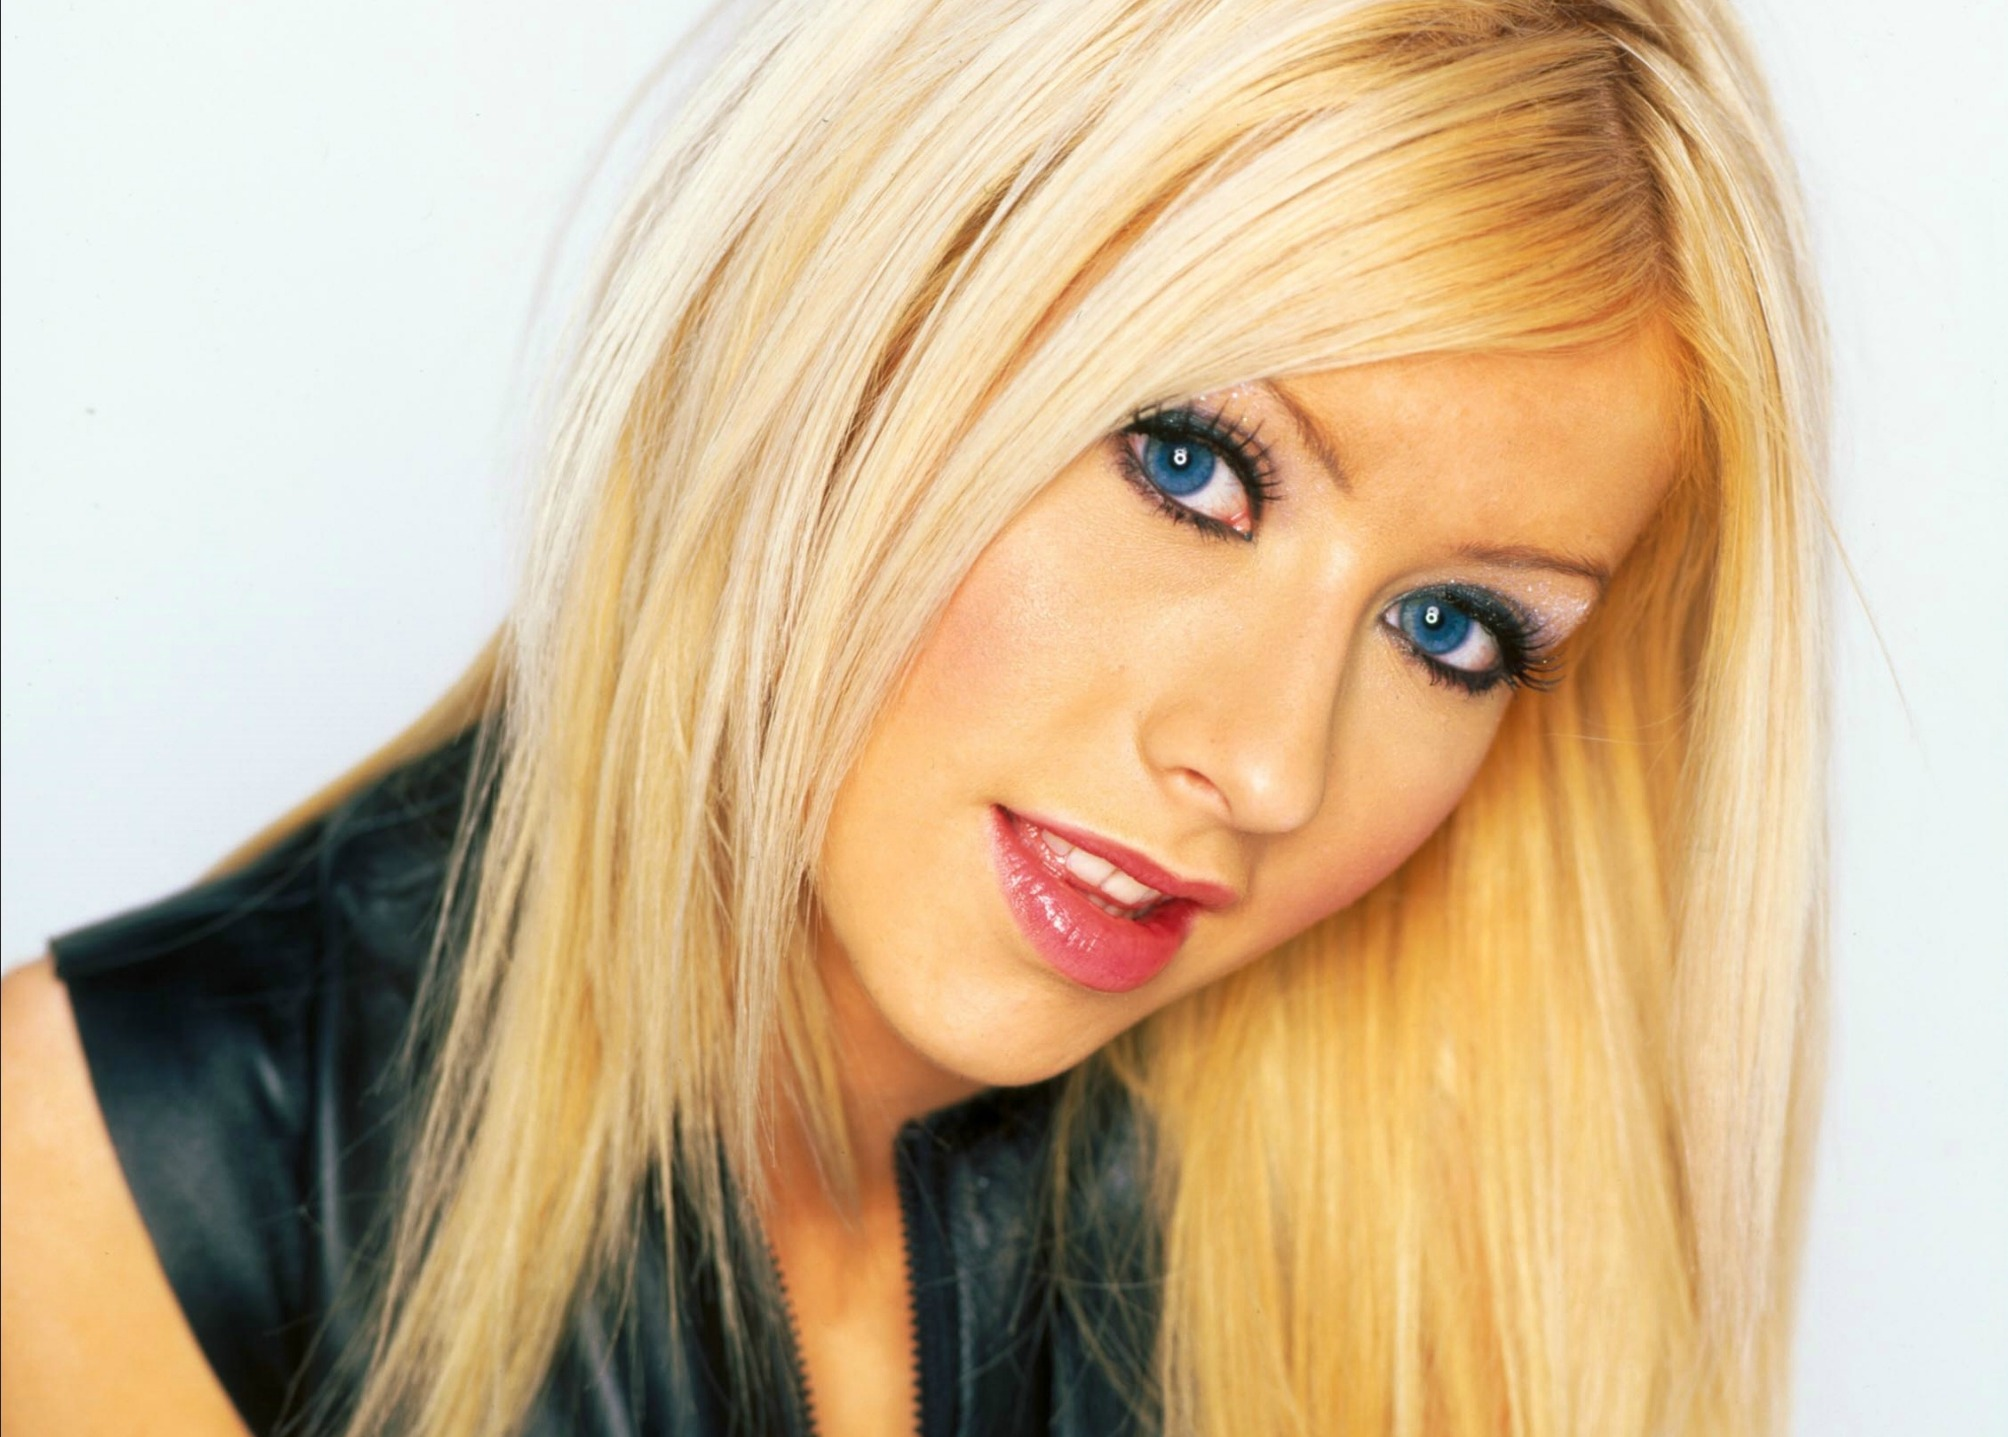 Christina Aguilera HD Wallpaper Background Image 2008x1437 2008x1437